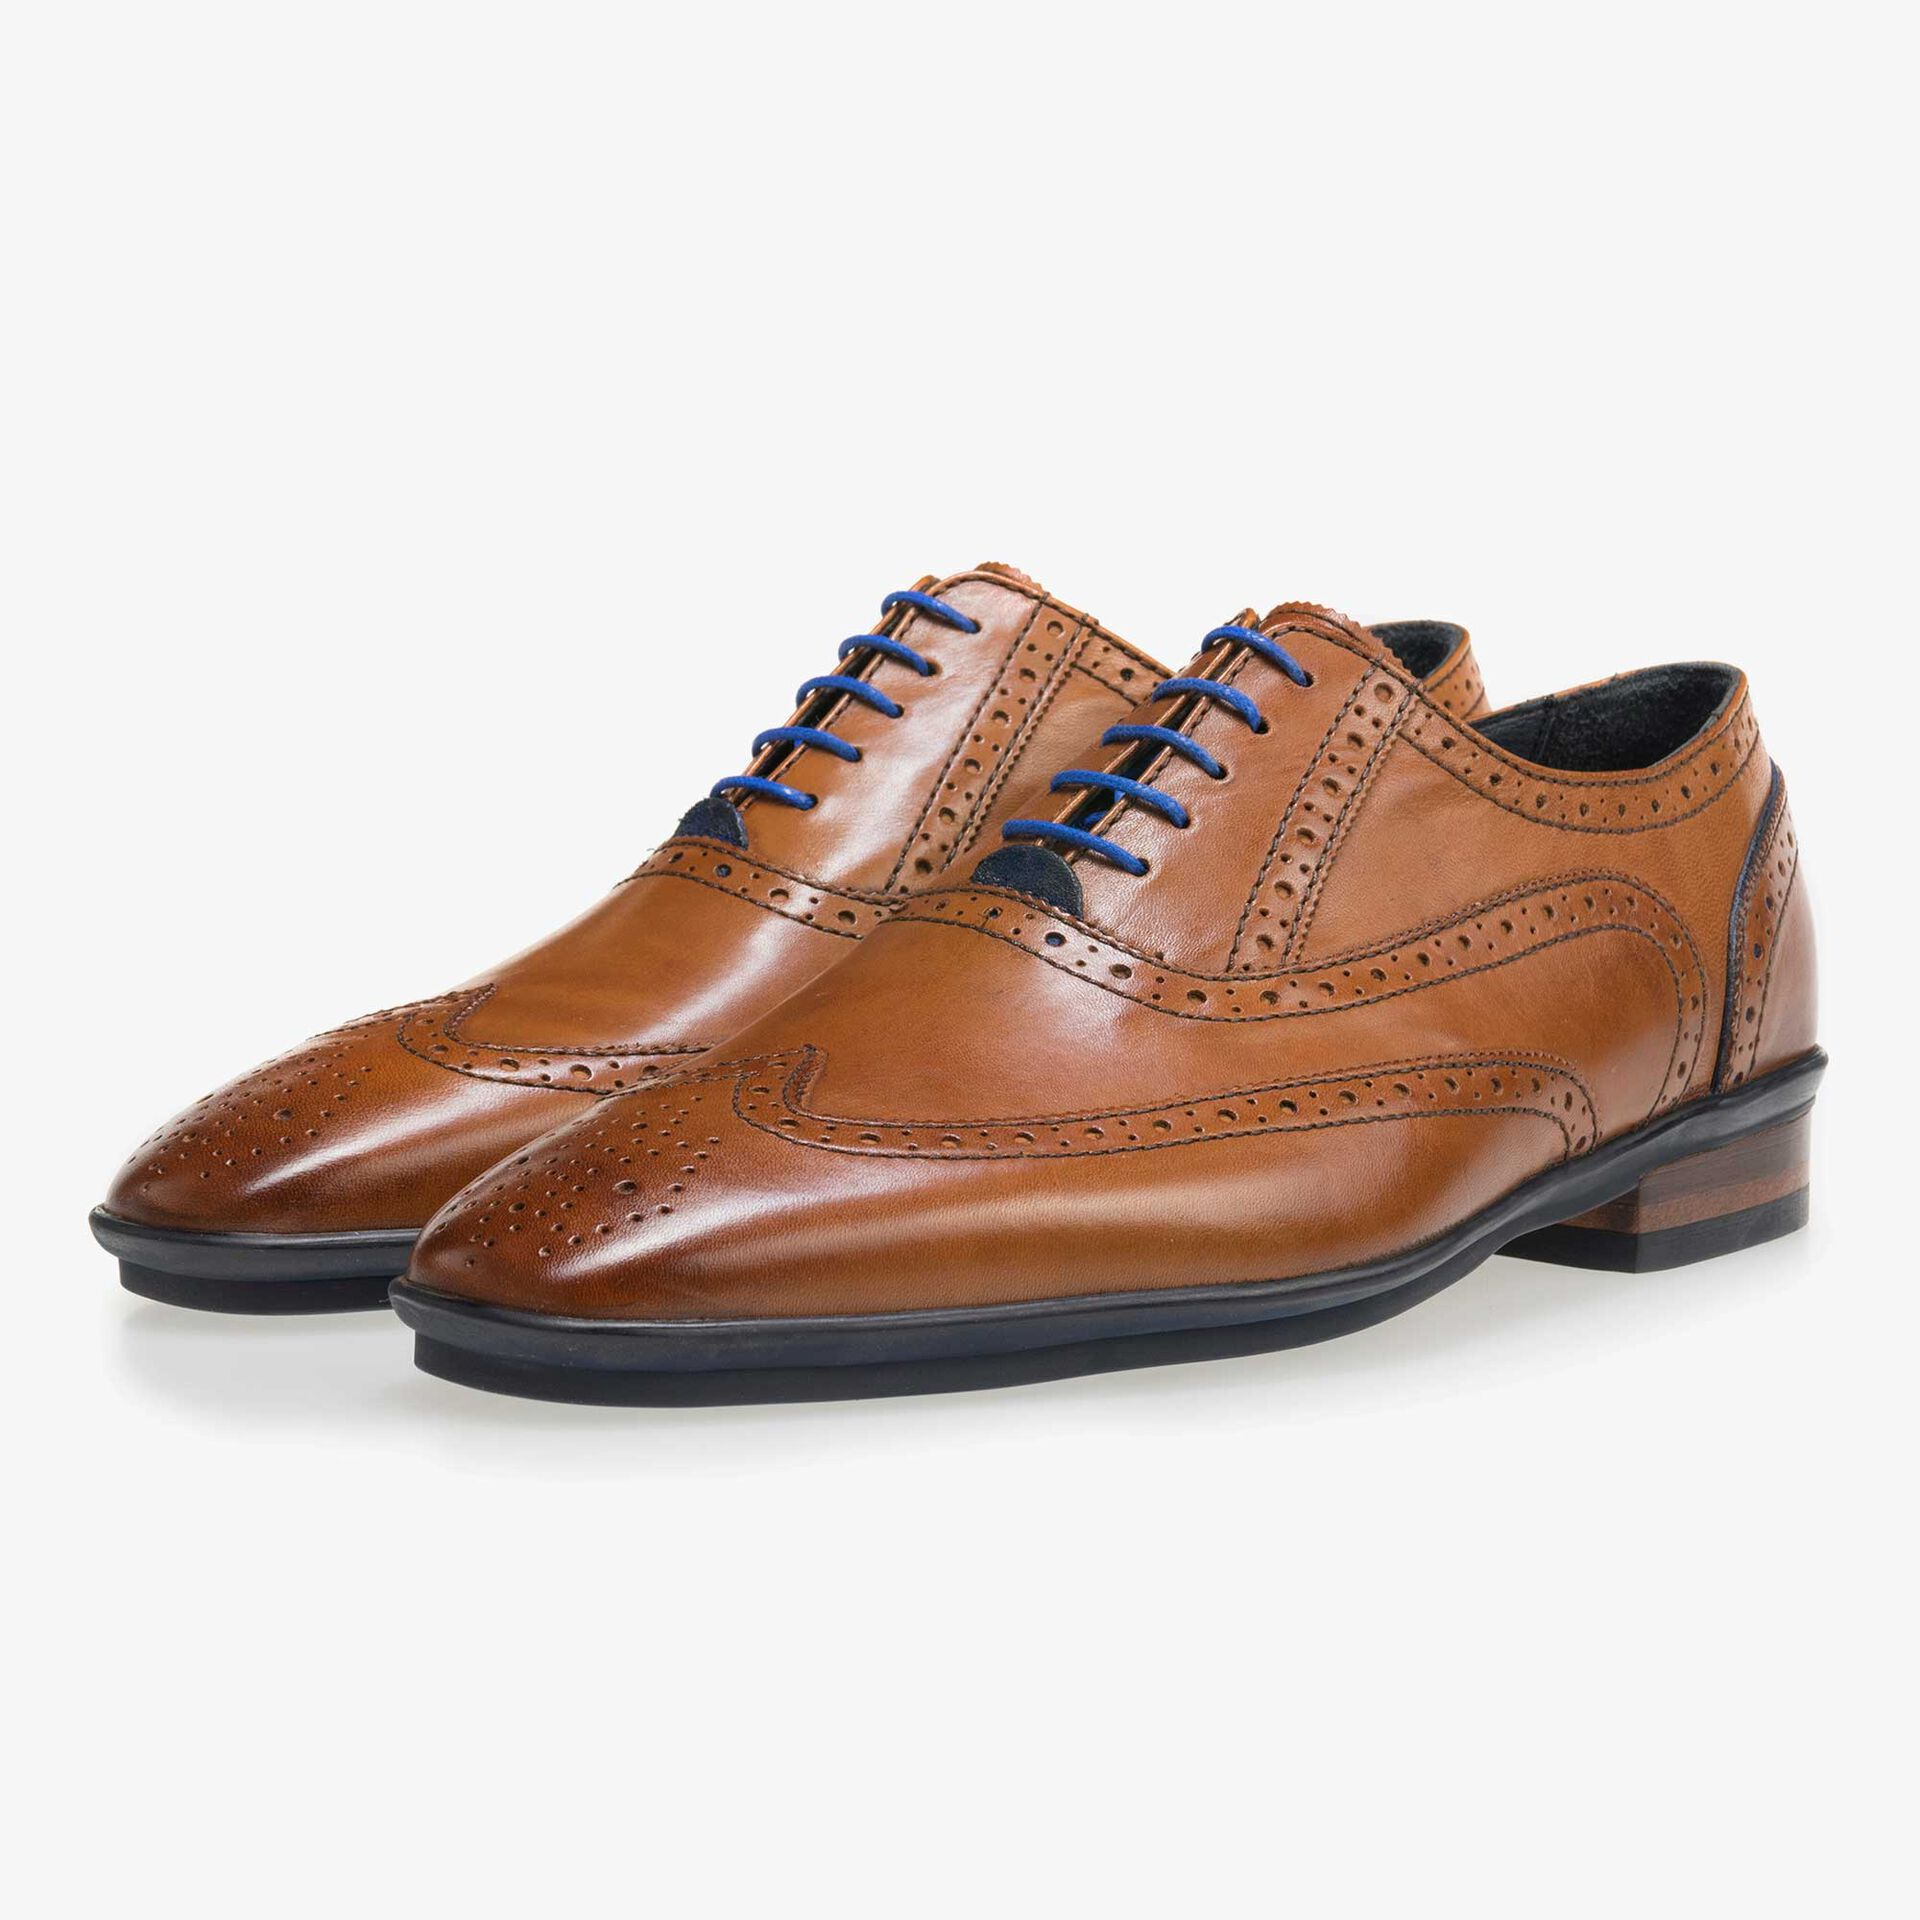 Cognac-coloured brogue leather lace shoe